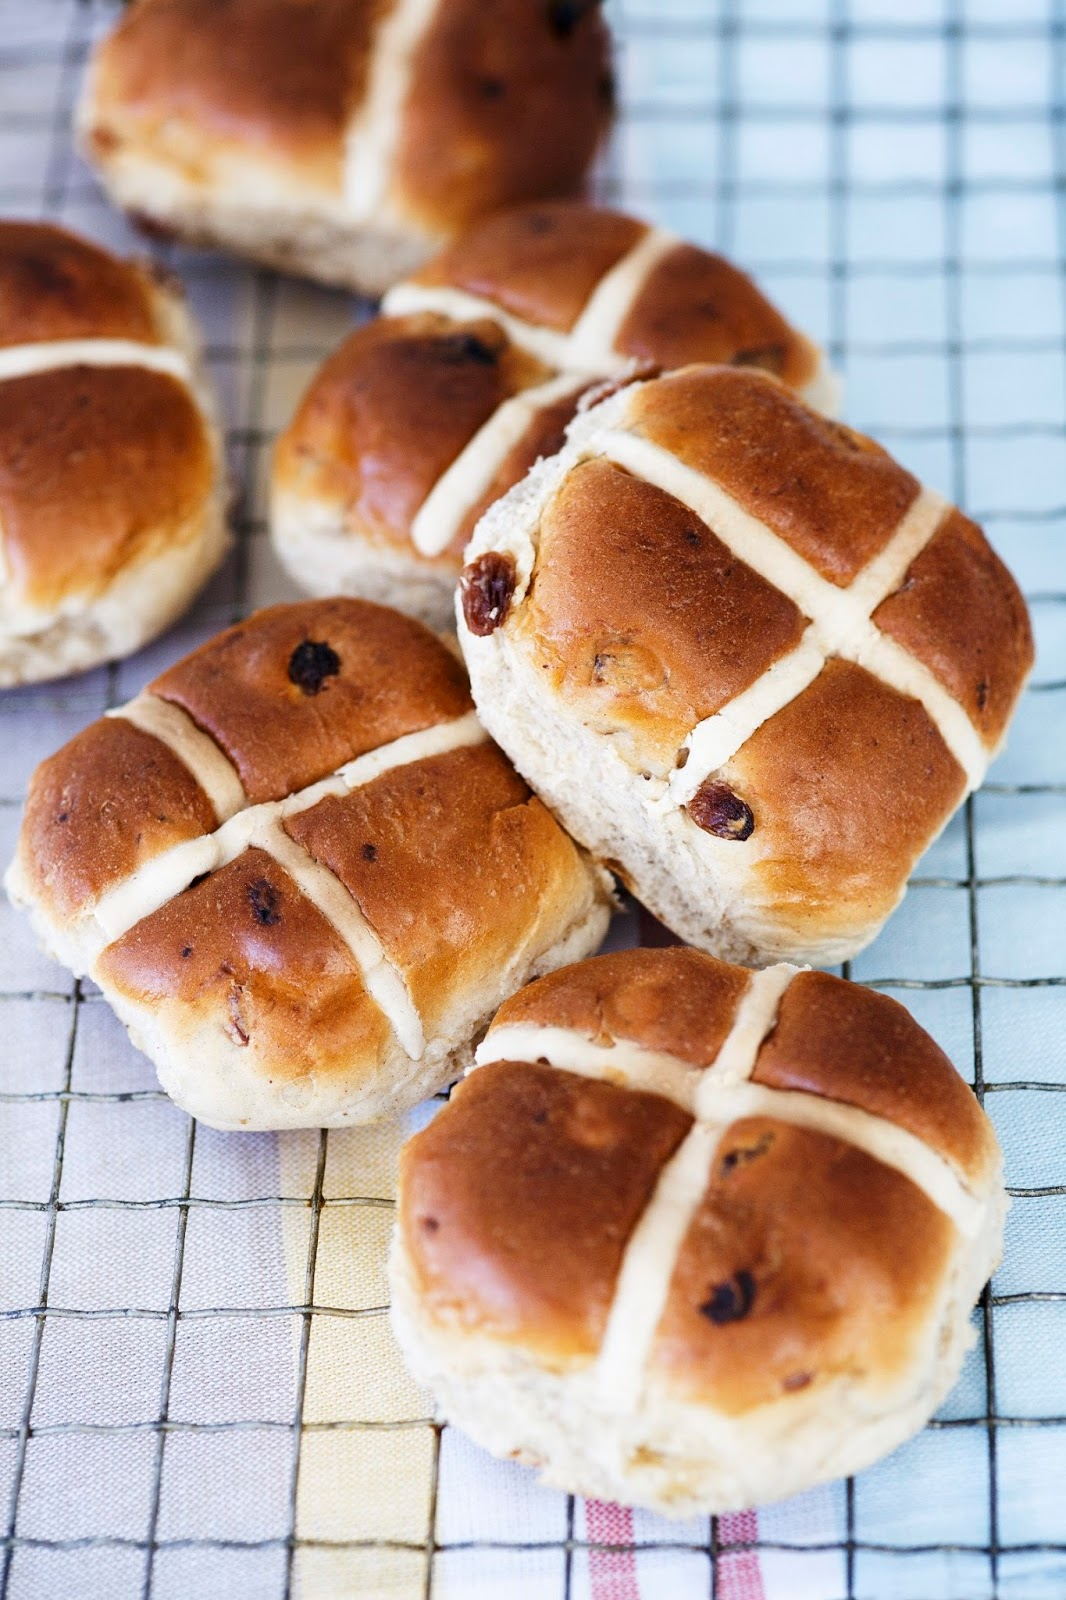 Hot Cross Buns With California Raisins